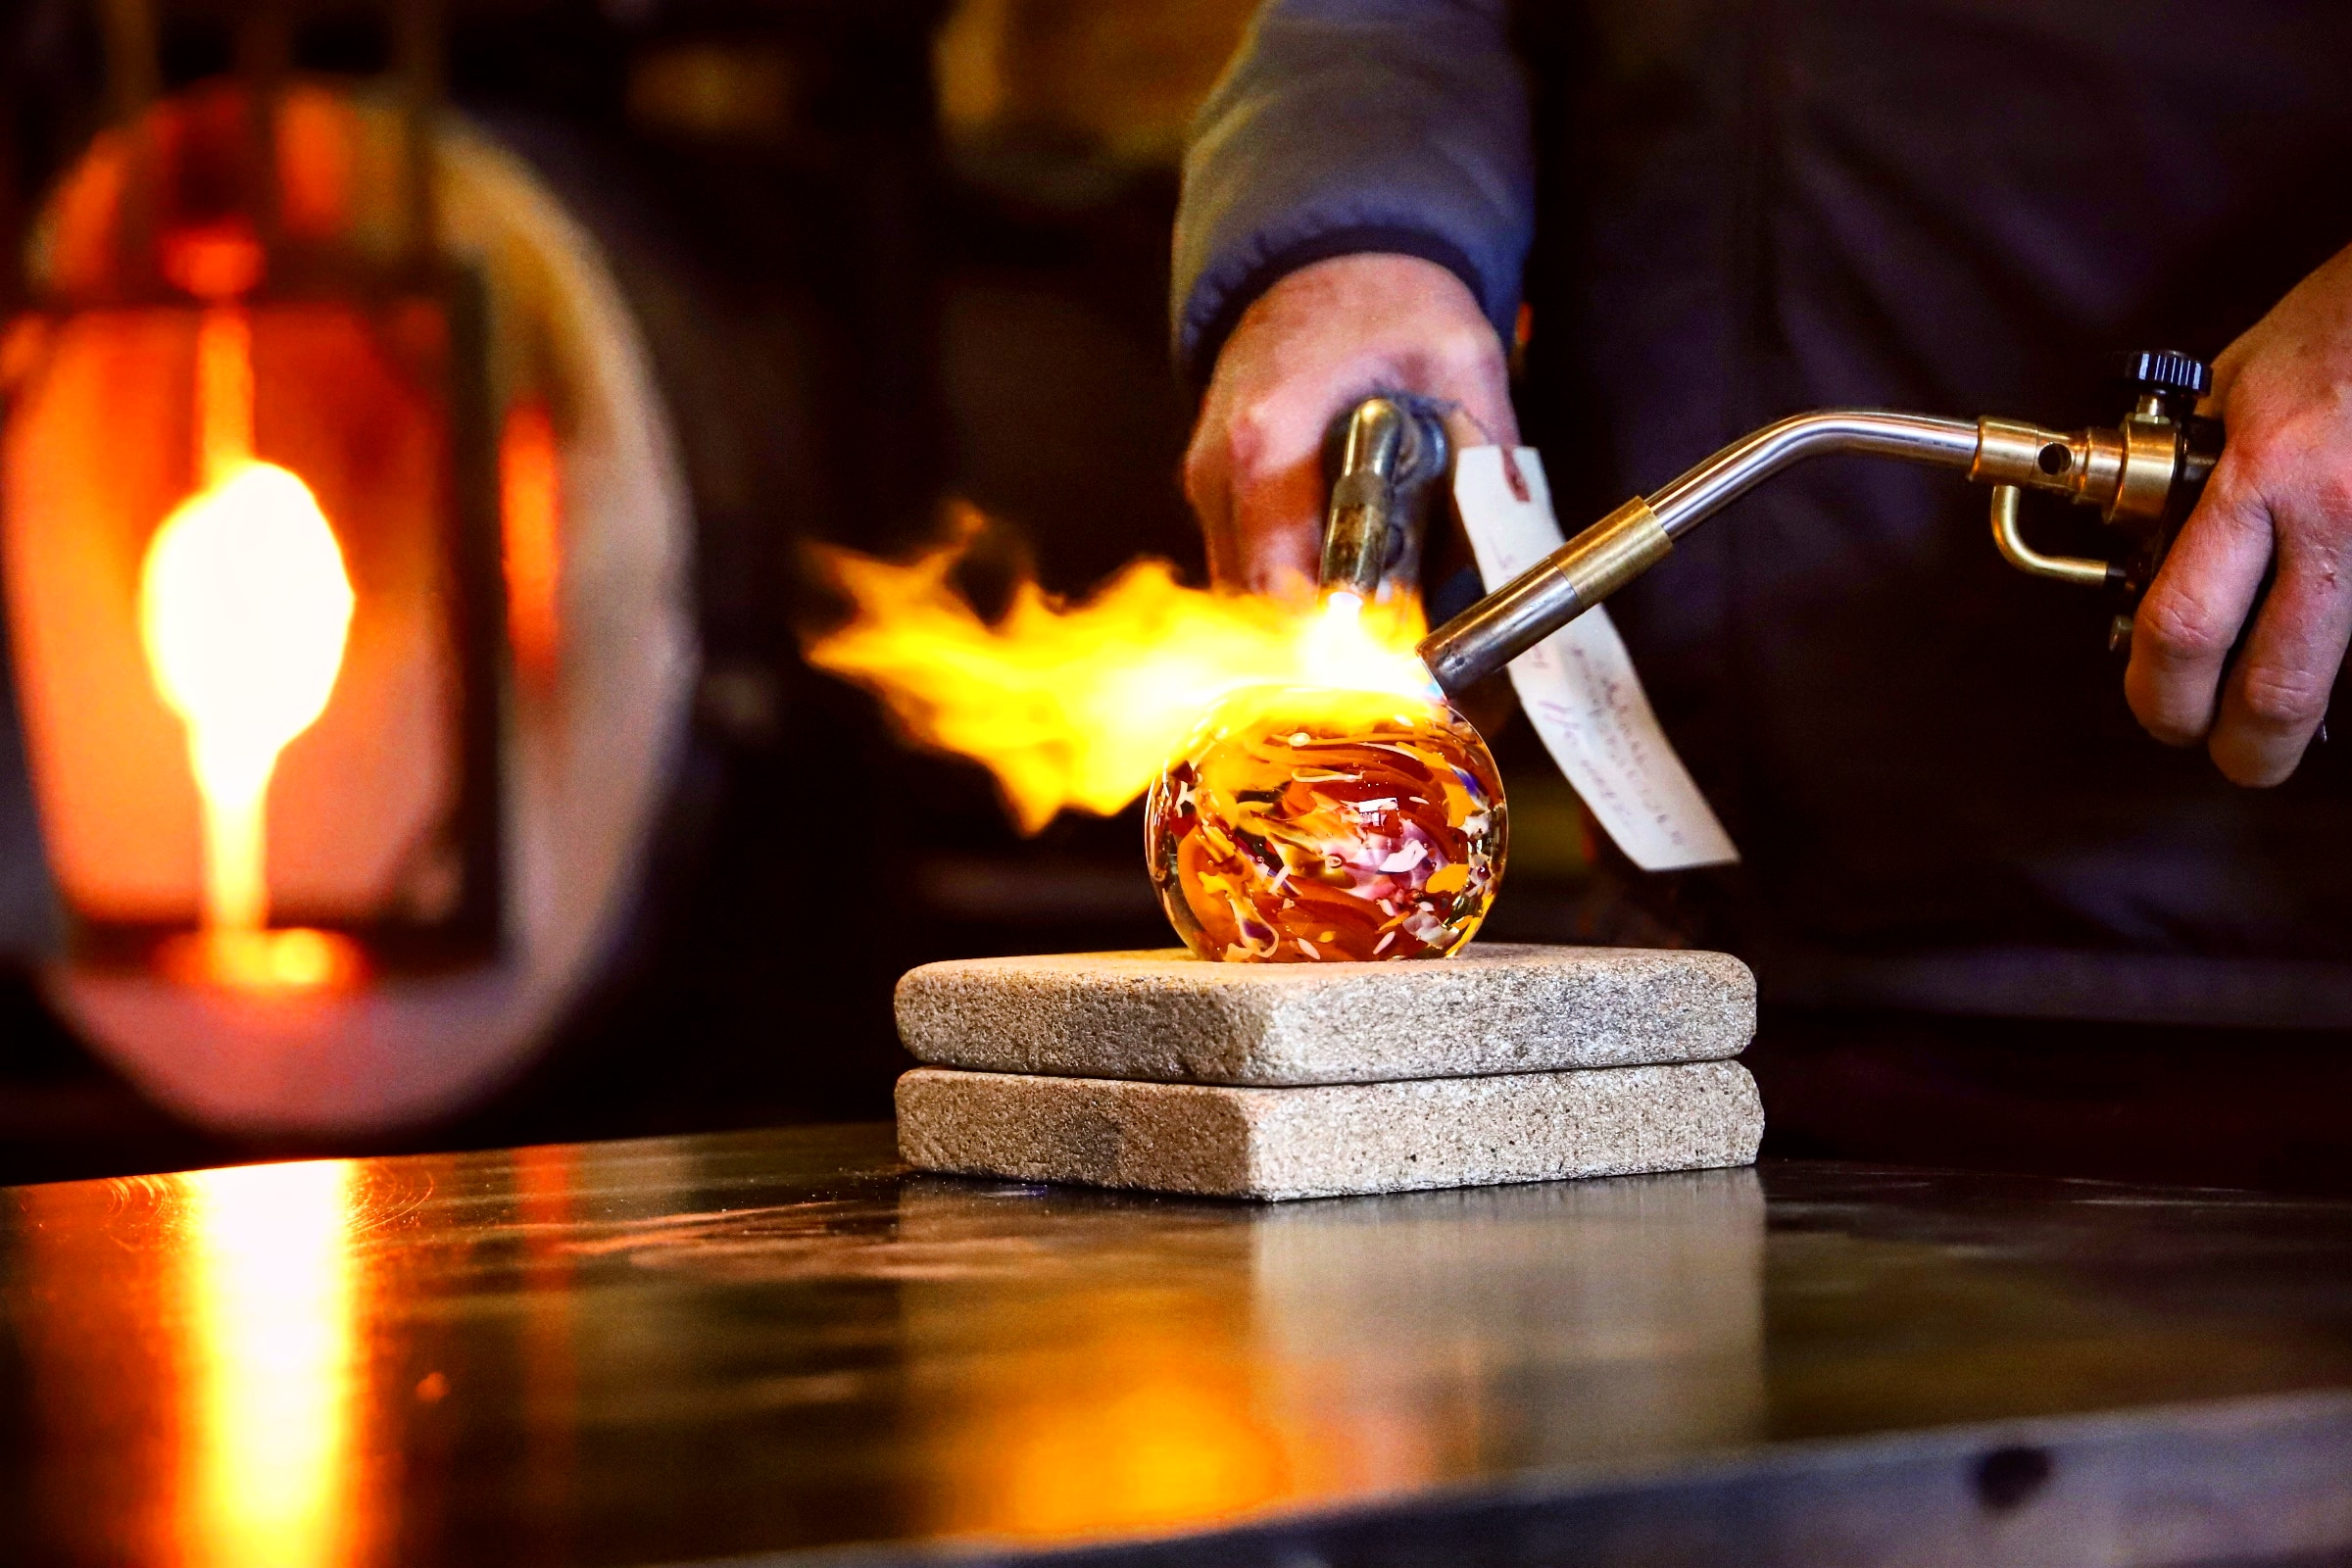 Monthly Paperweight Classes - Once a month, we host a public event for everyone to sign up & come to learn the basics of glassblowing by creating their own paperweight! Click here to learn more!